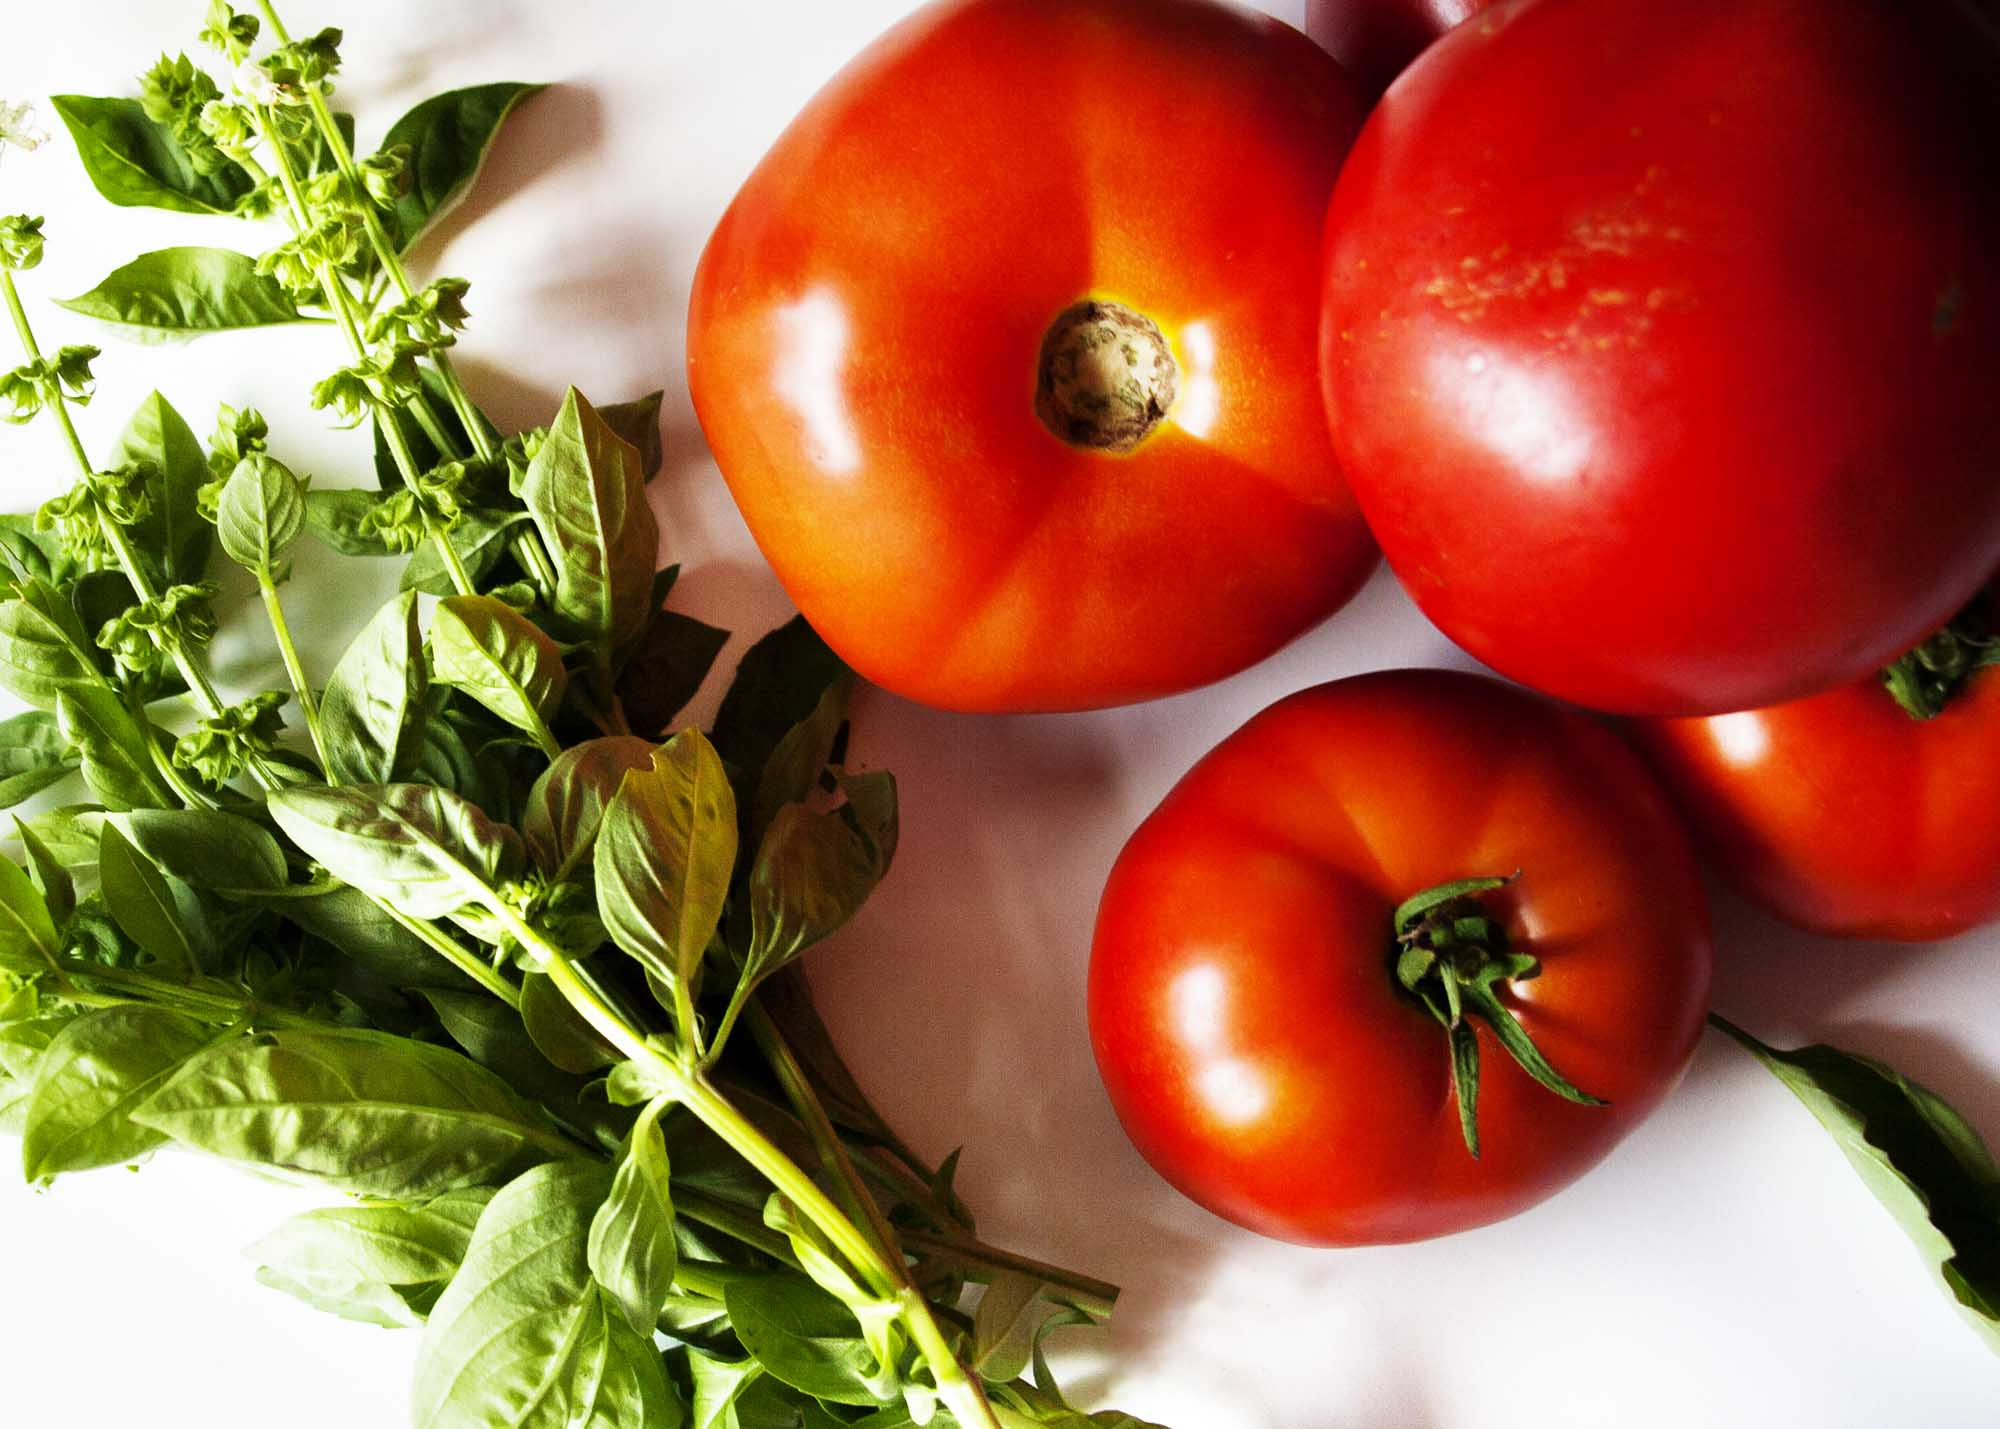 Tomato, Basil Caprese Salad - This salad is a example of taking the freshest ingredients using them simply and producing incredible results. | justalittlebitofbacon.com